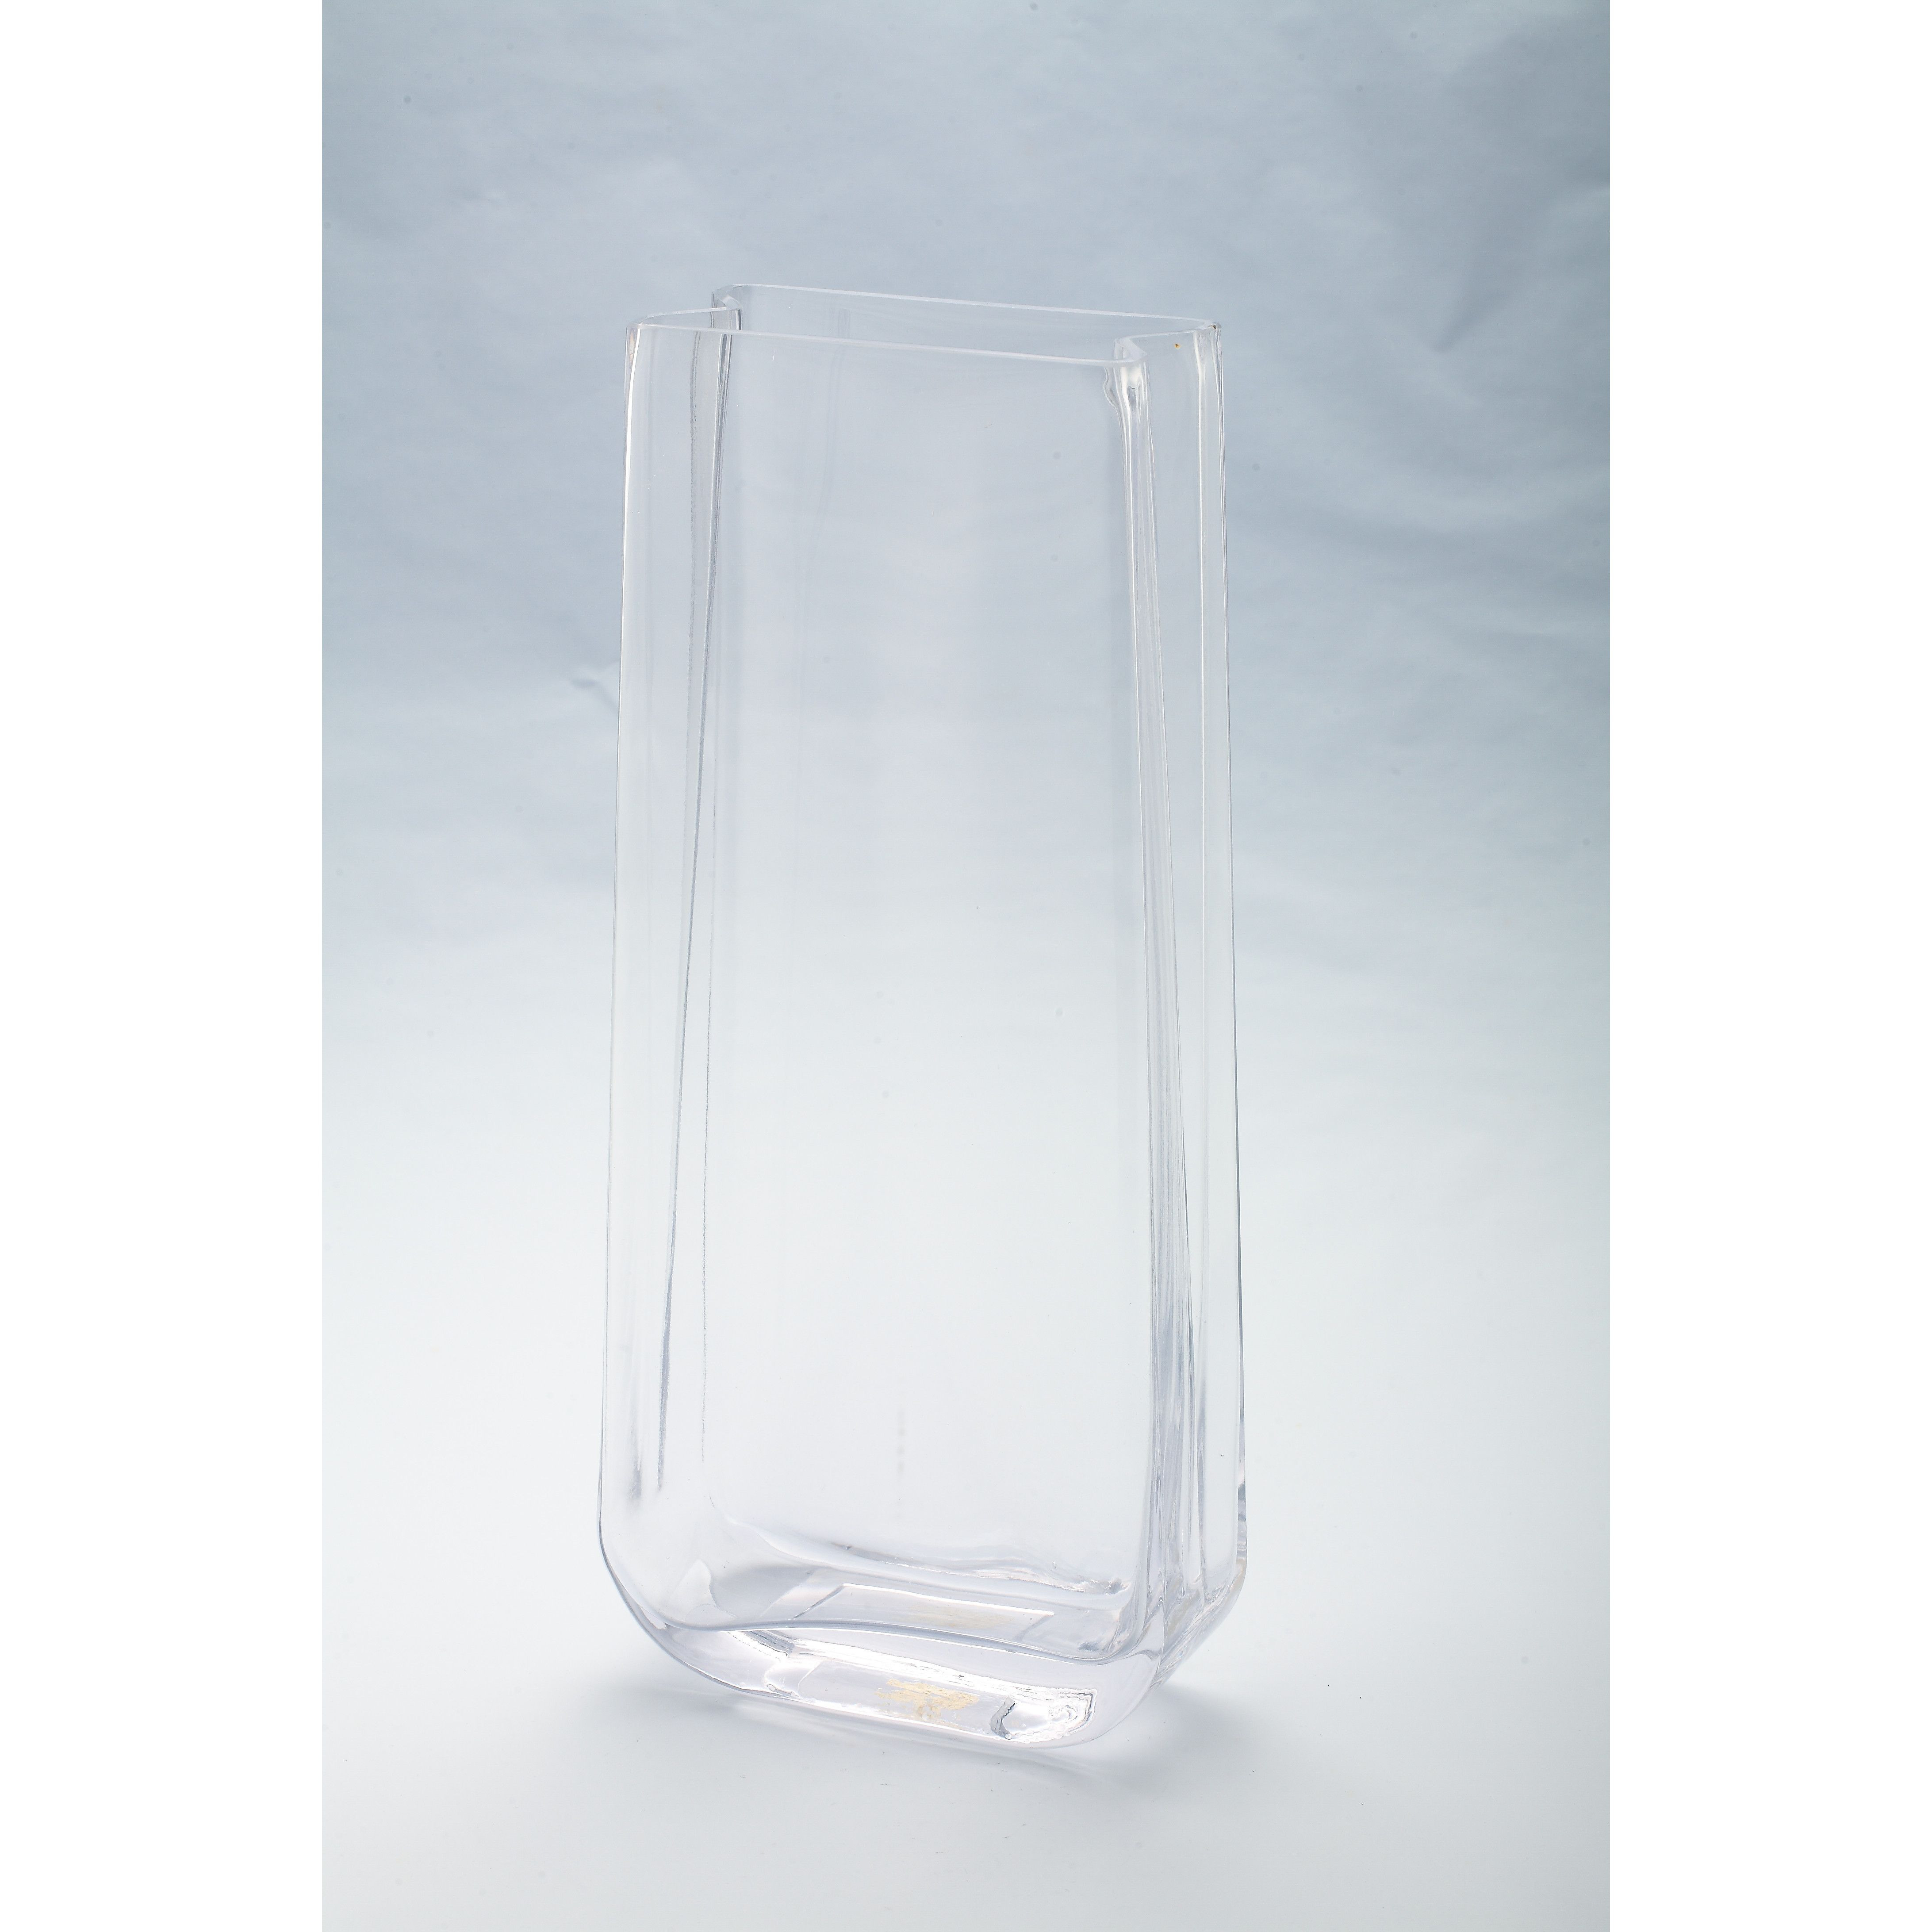 5 inch glass vase of long rectangular glass vase collection homeford fbb00vasq555 clear with regard to gallery of long rectangular glass vase